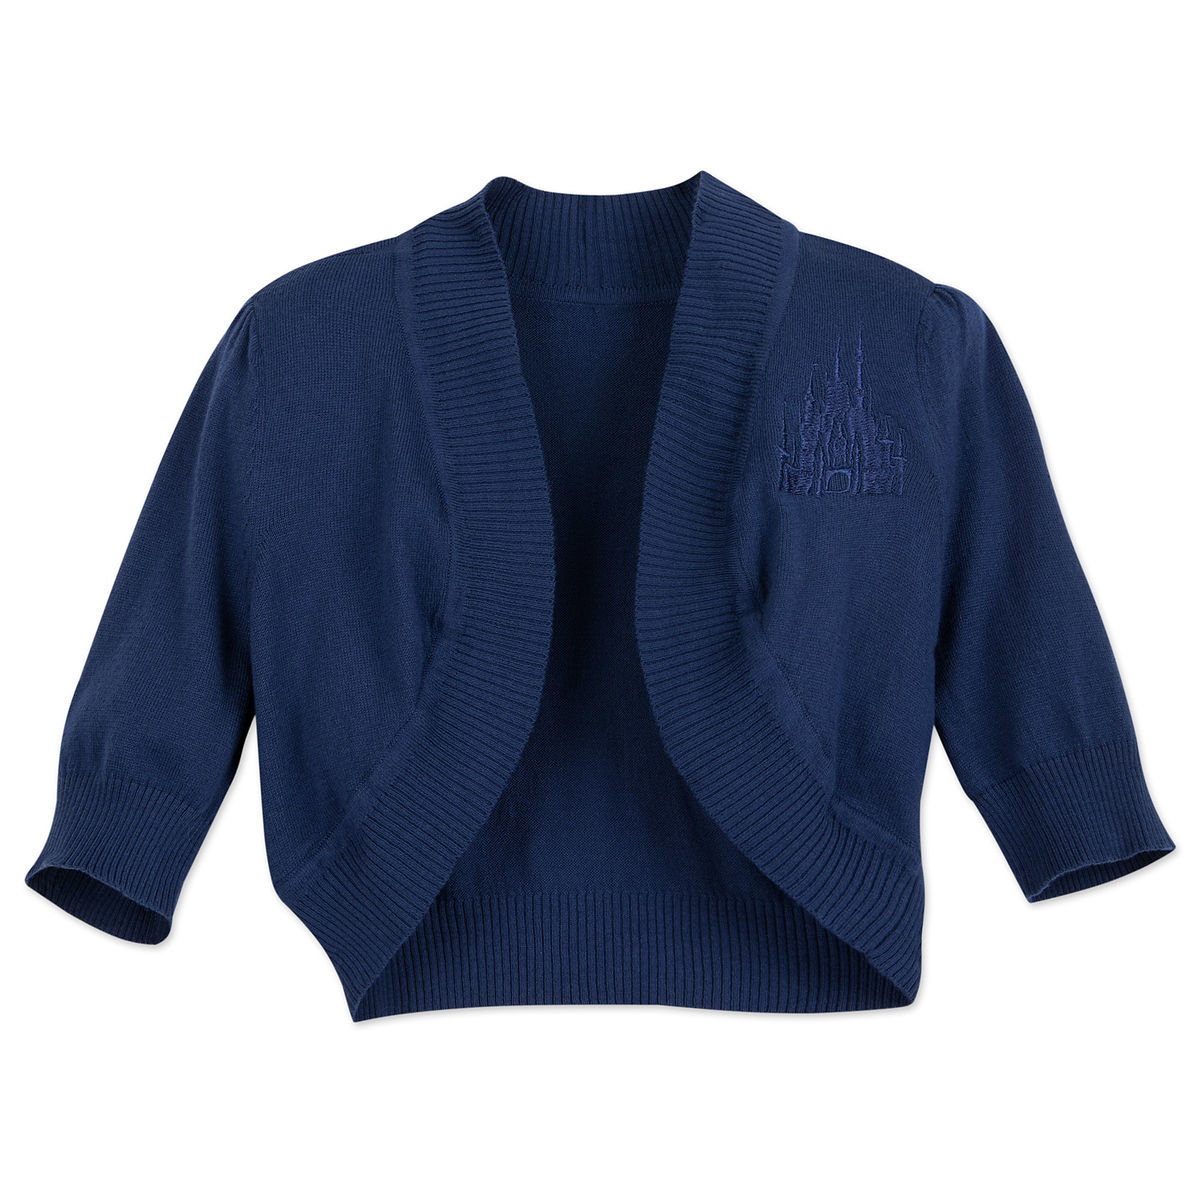 Fantasyland Castle Cardigan For Women By Her Universe   Navy by Disney